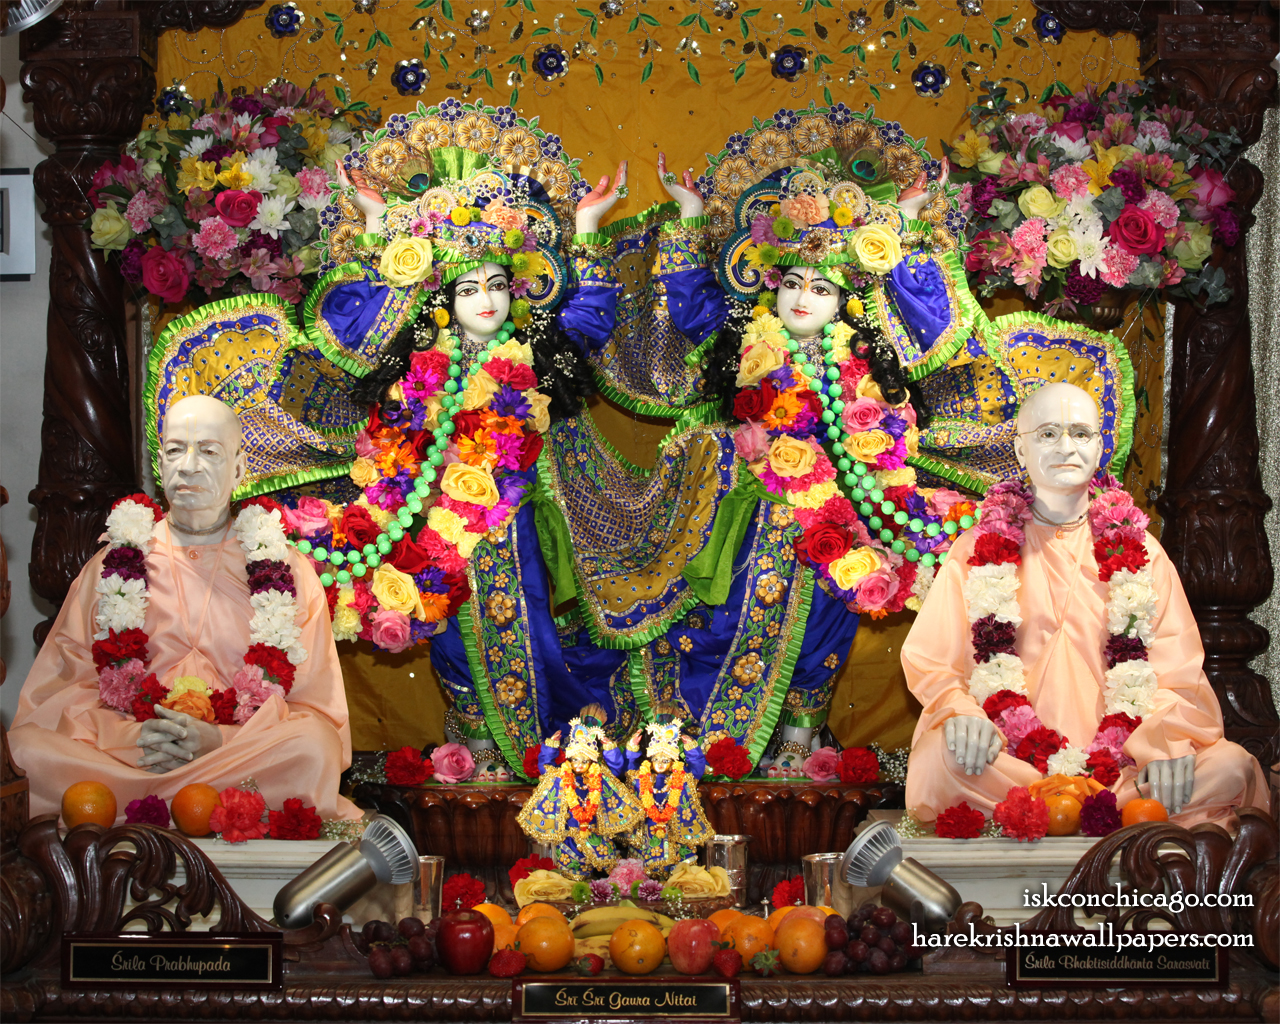 Sri Sri Gaura Nitai with Acharyas Wallpaper (002) Size 1280x1024 Download